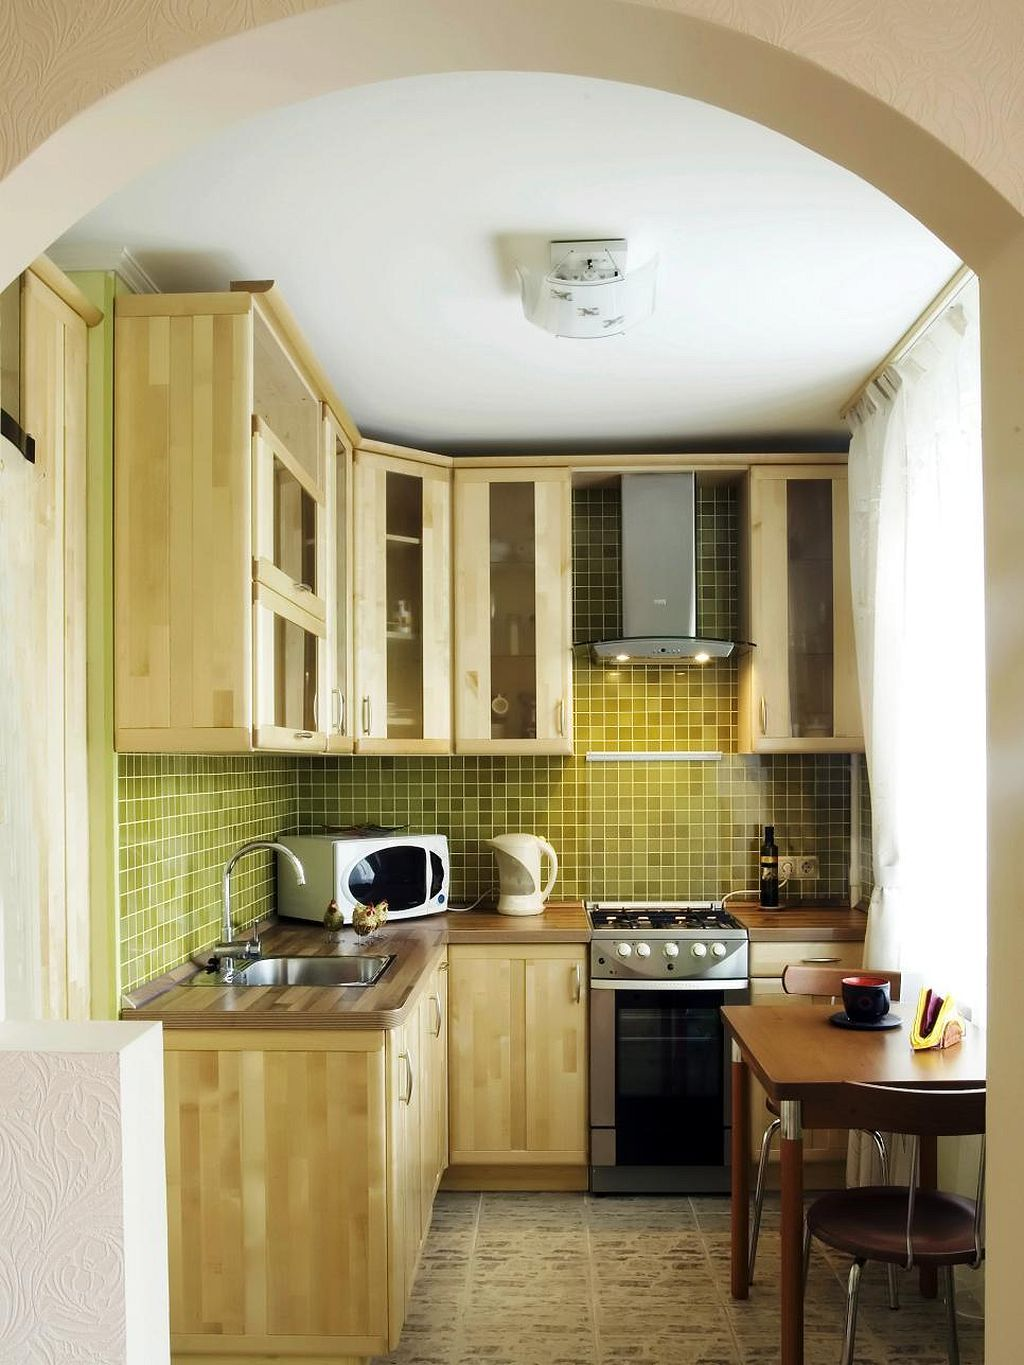 Simple Kitchen Design For Small Space Mycoffeepot Org